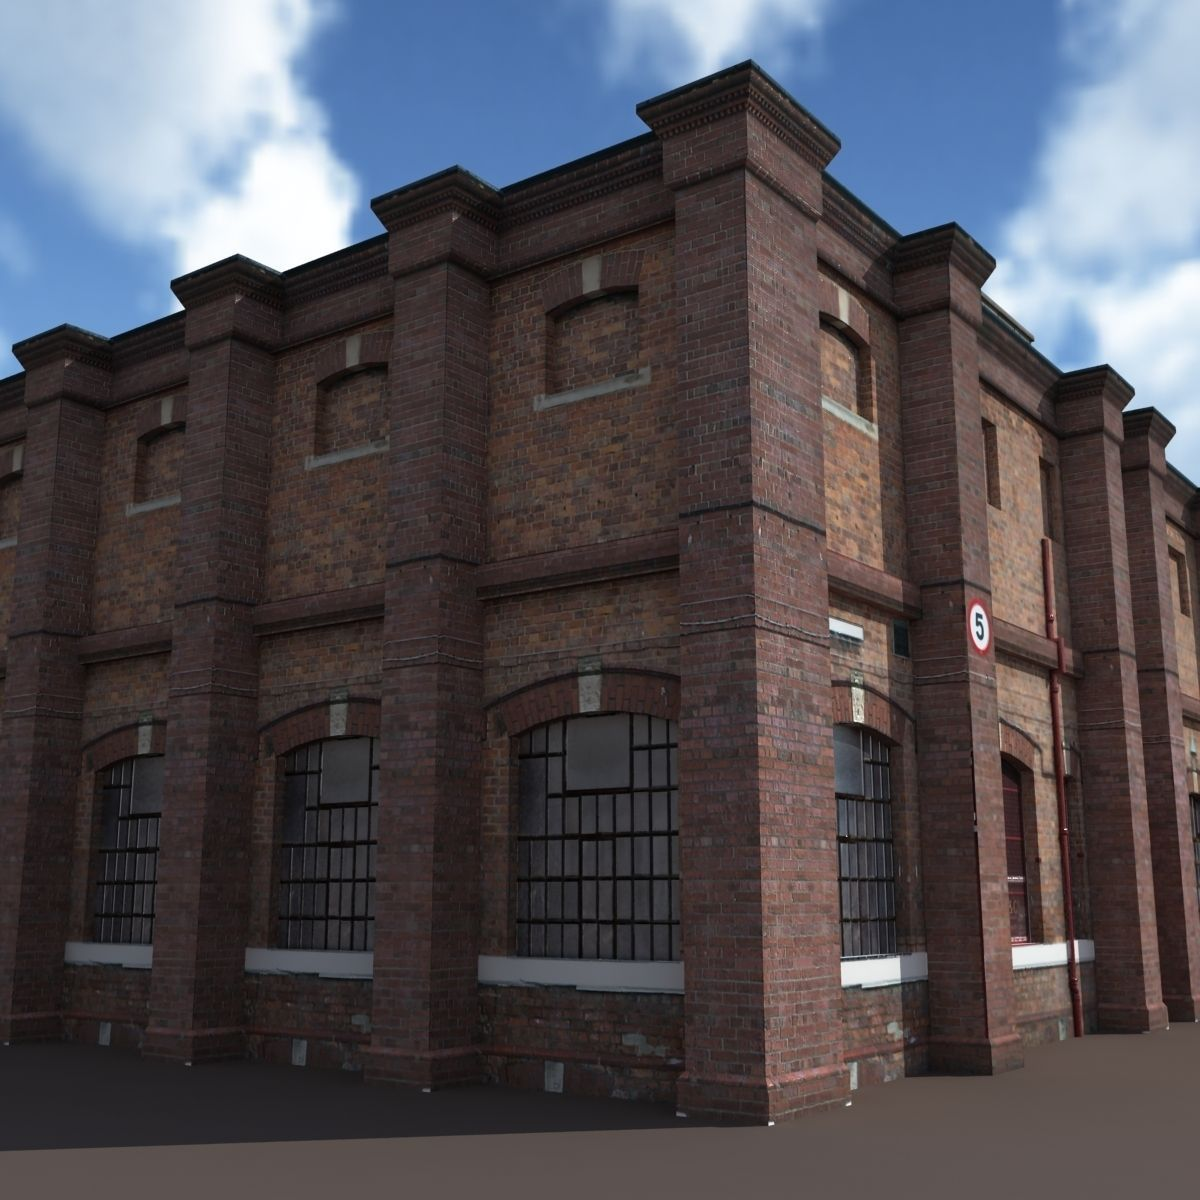 Old Factory Low Poly 127 3D Model MAX OBJ 3DS LWO LW LWS